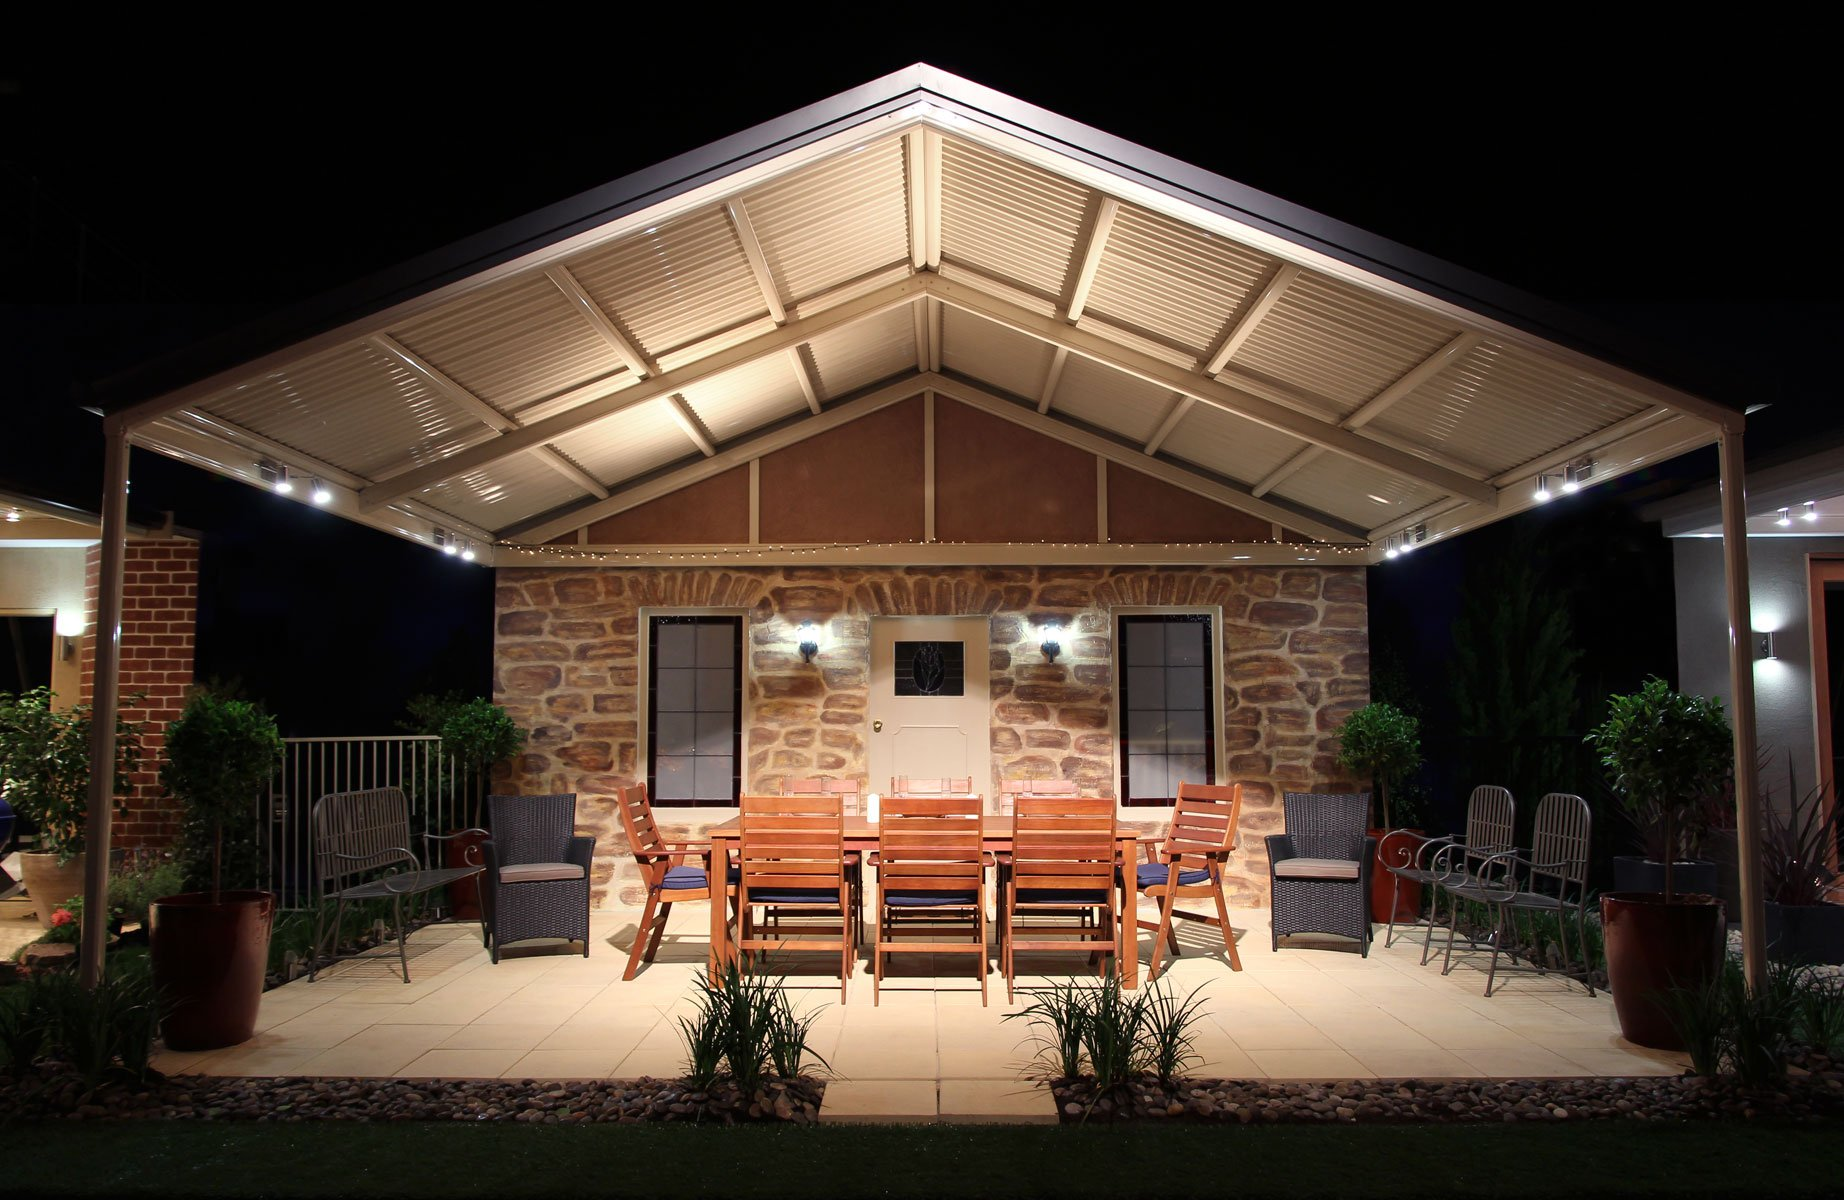 Elegant Gabled Roof at Night Viewing made by the best Patio Builders in Burleigh Heads